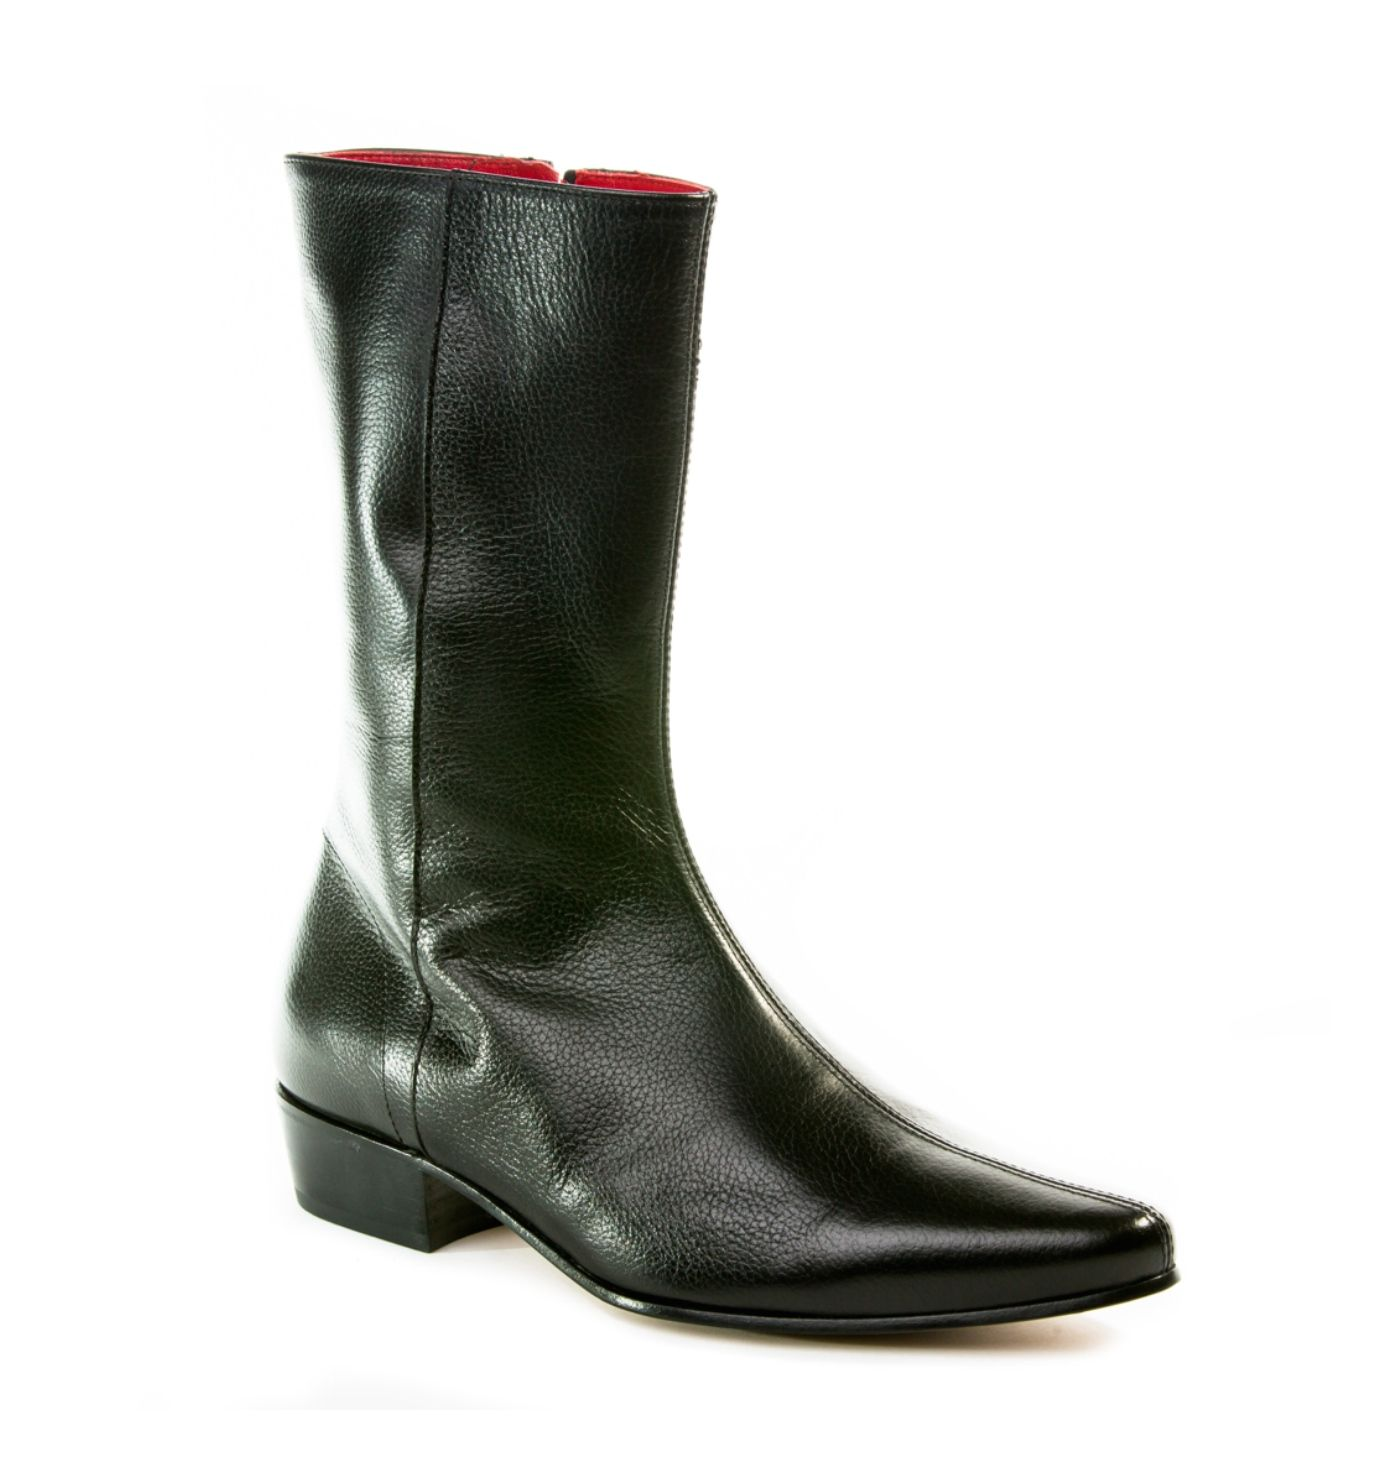 Low Lennon Boot In Black Grain Leather Gothic Shoes And